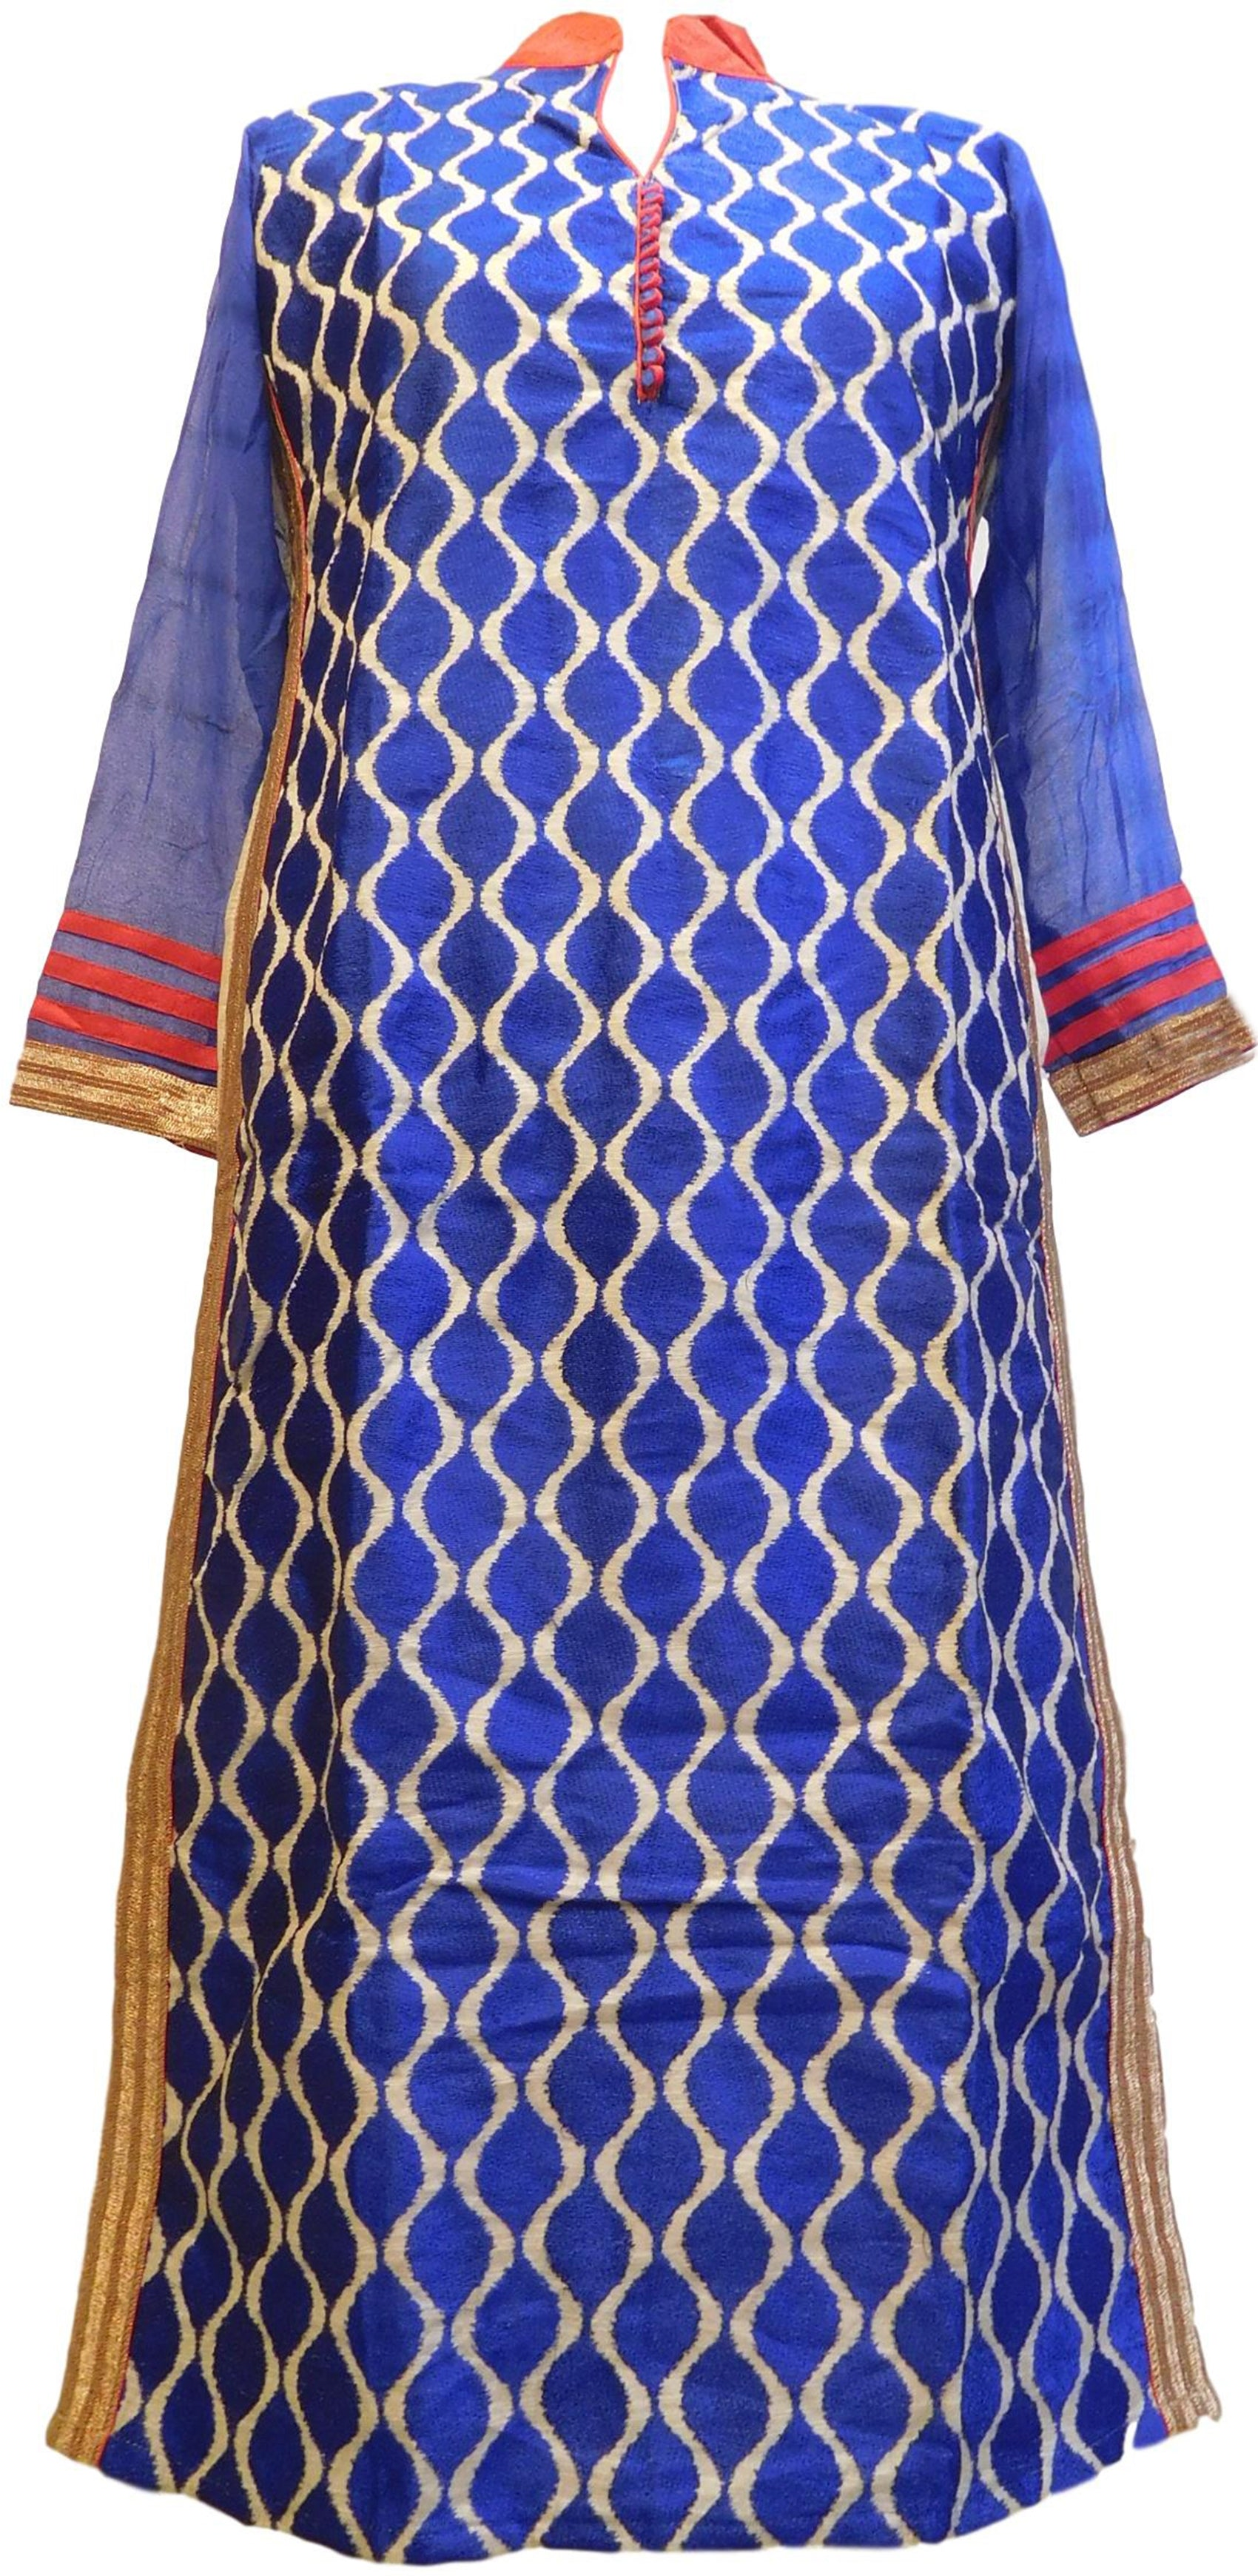 Blue Designer Cotton (Chanderi) Hand Embroidery Zari Thread Work PartyWear Bollywood Style Kurti Kurta